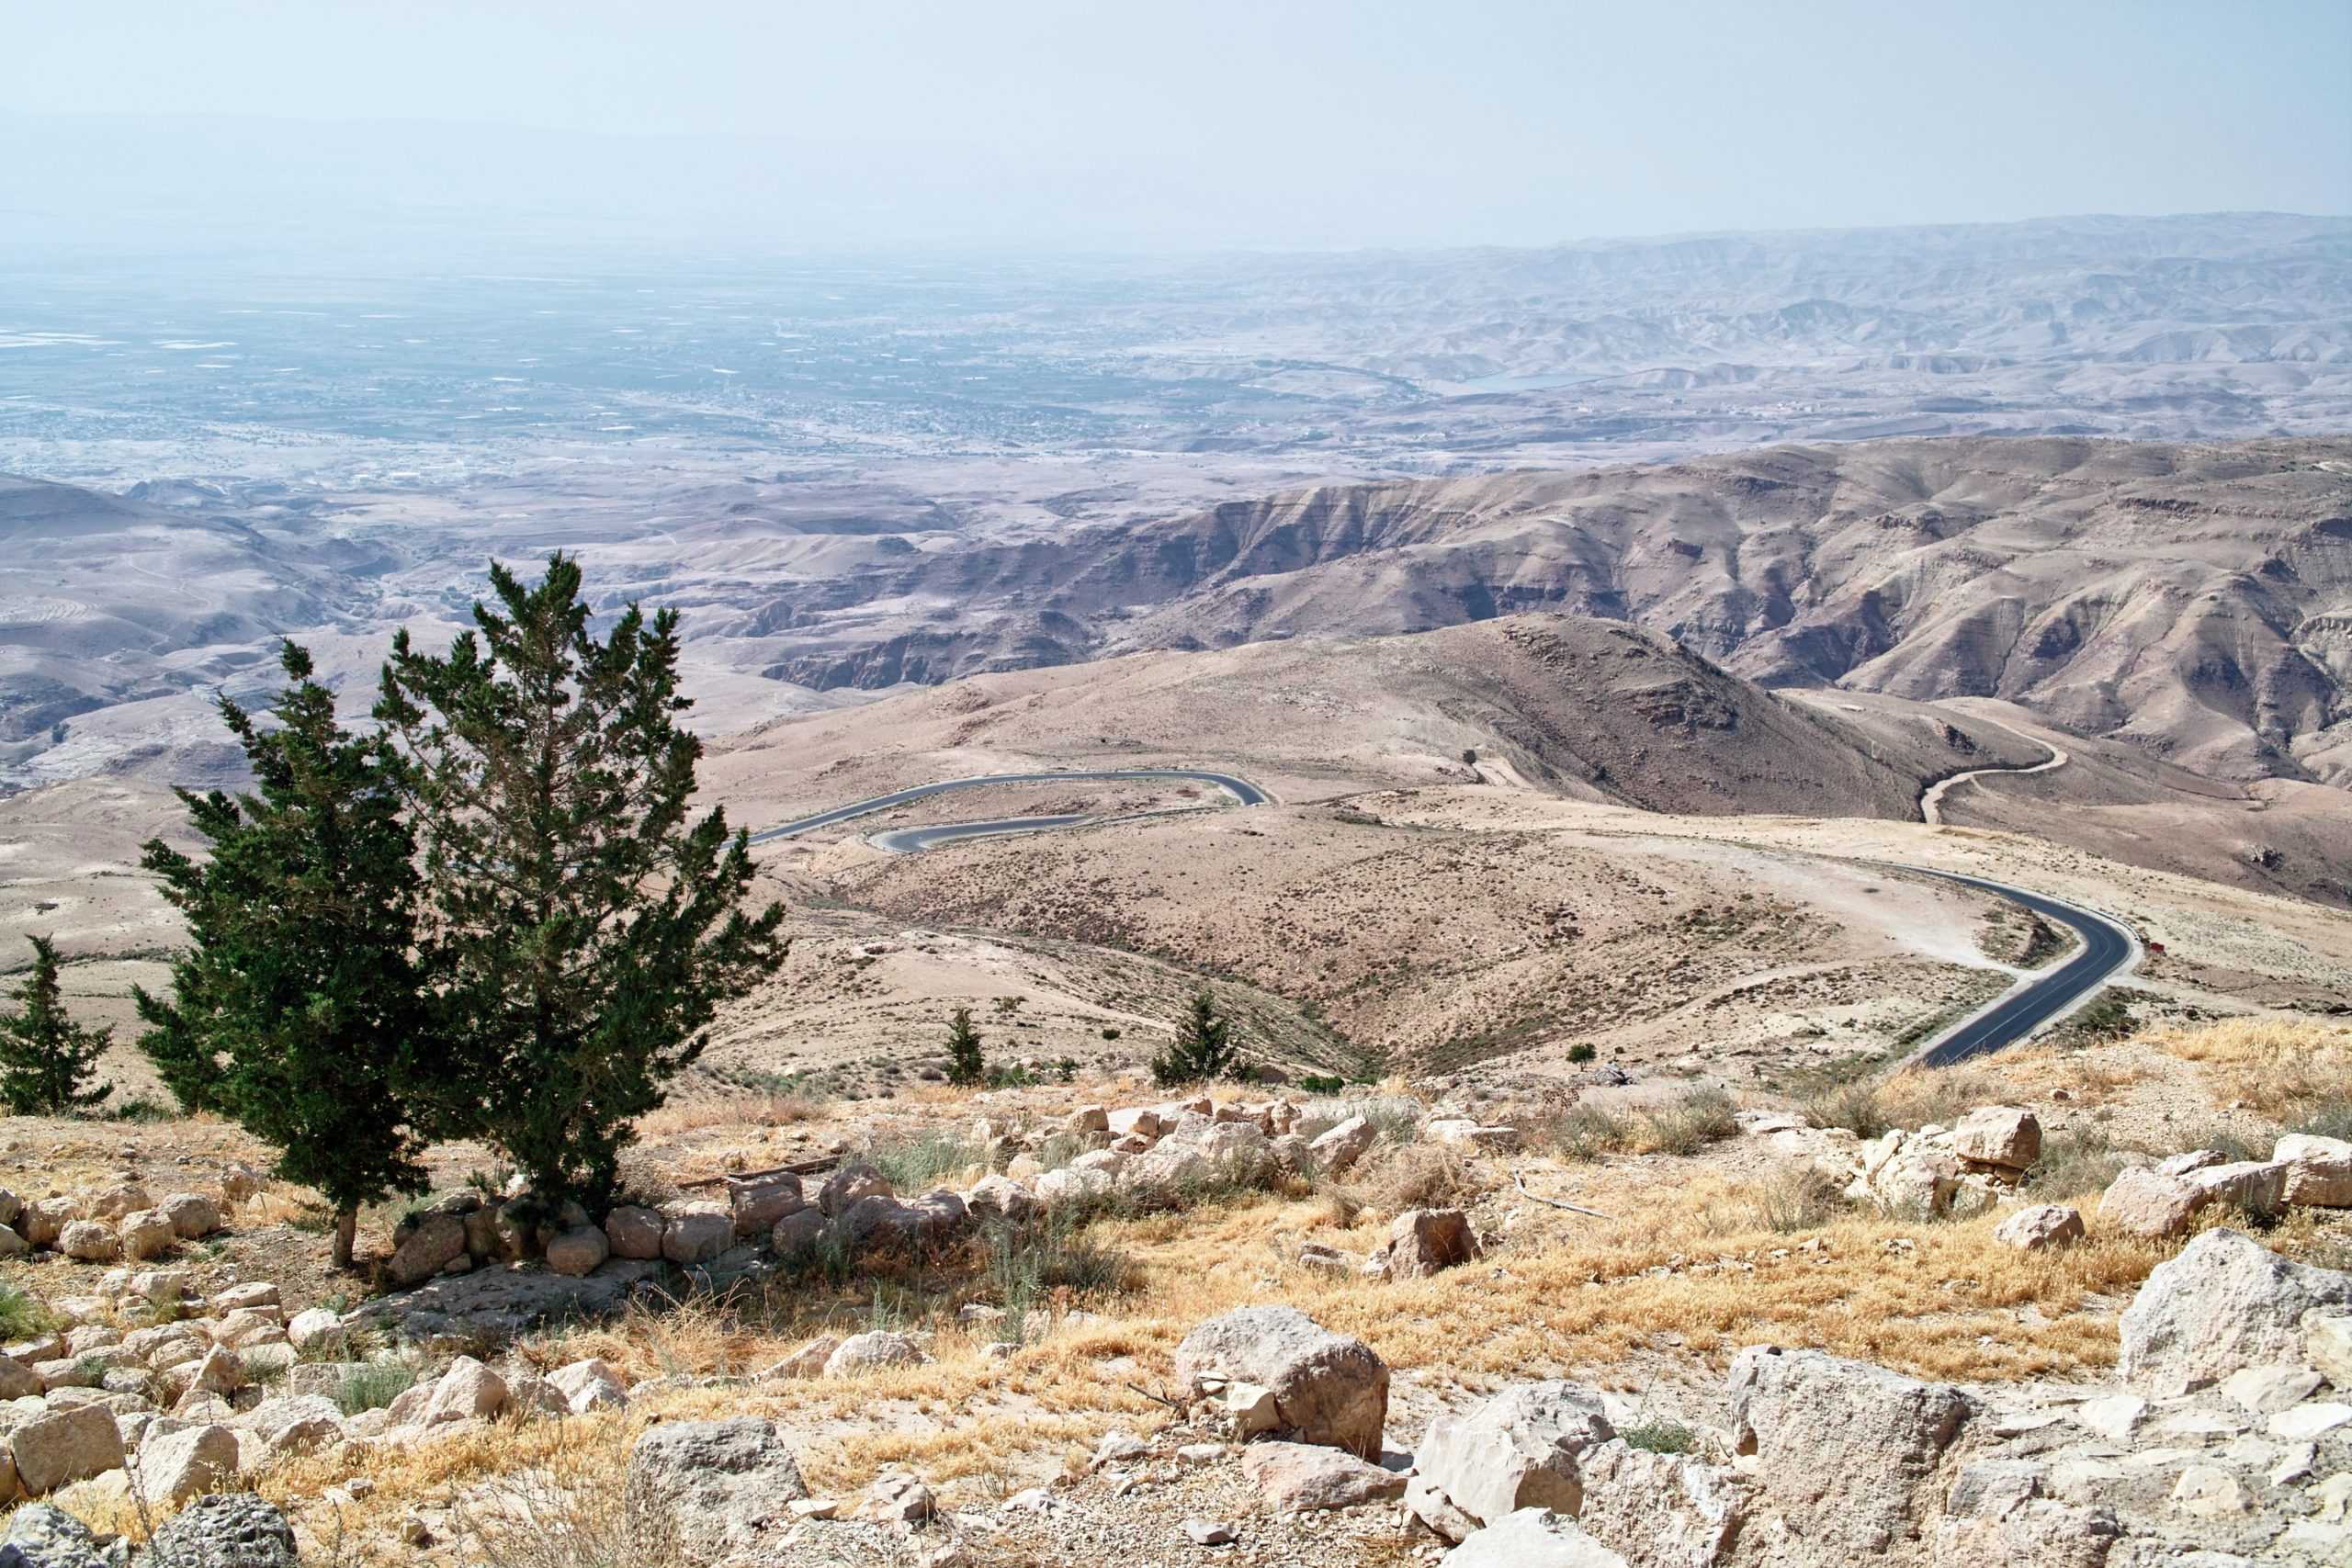 Enjoy The View Over The Promised Land From Mt Nebo Highlights Of Jordan 3 Day Tour From Amman